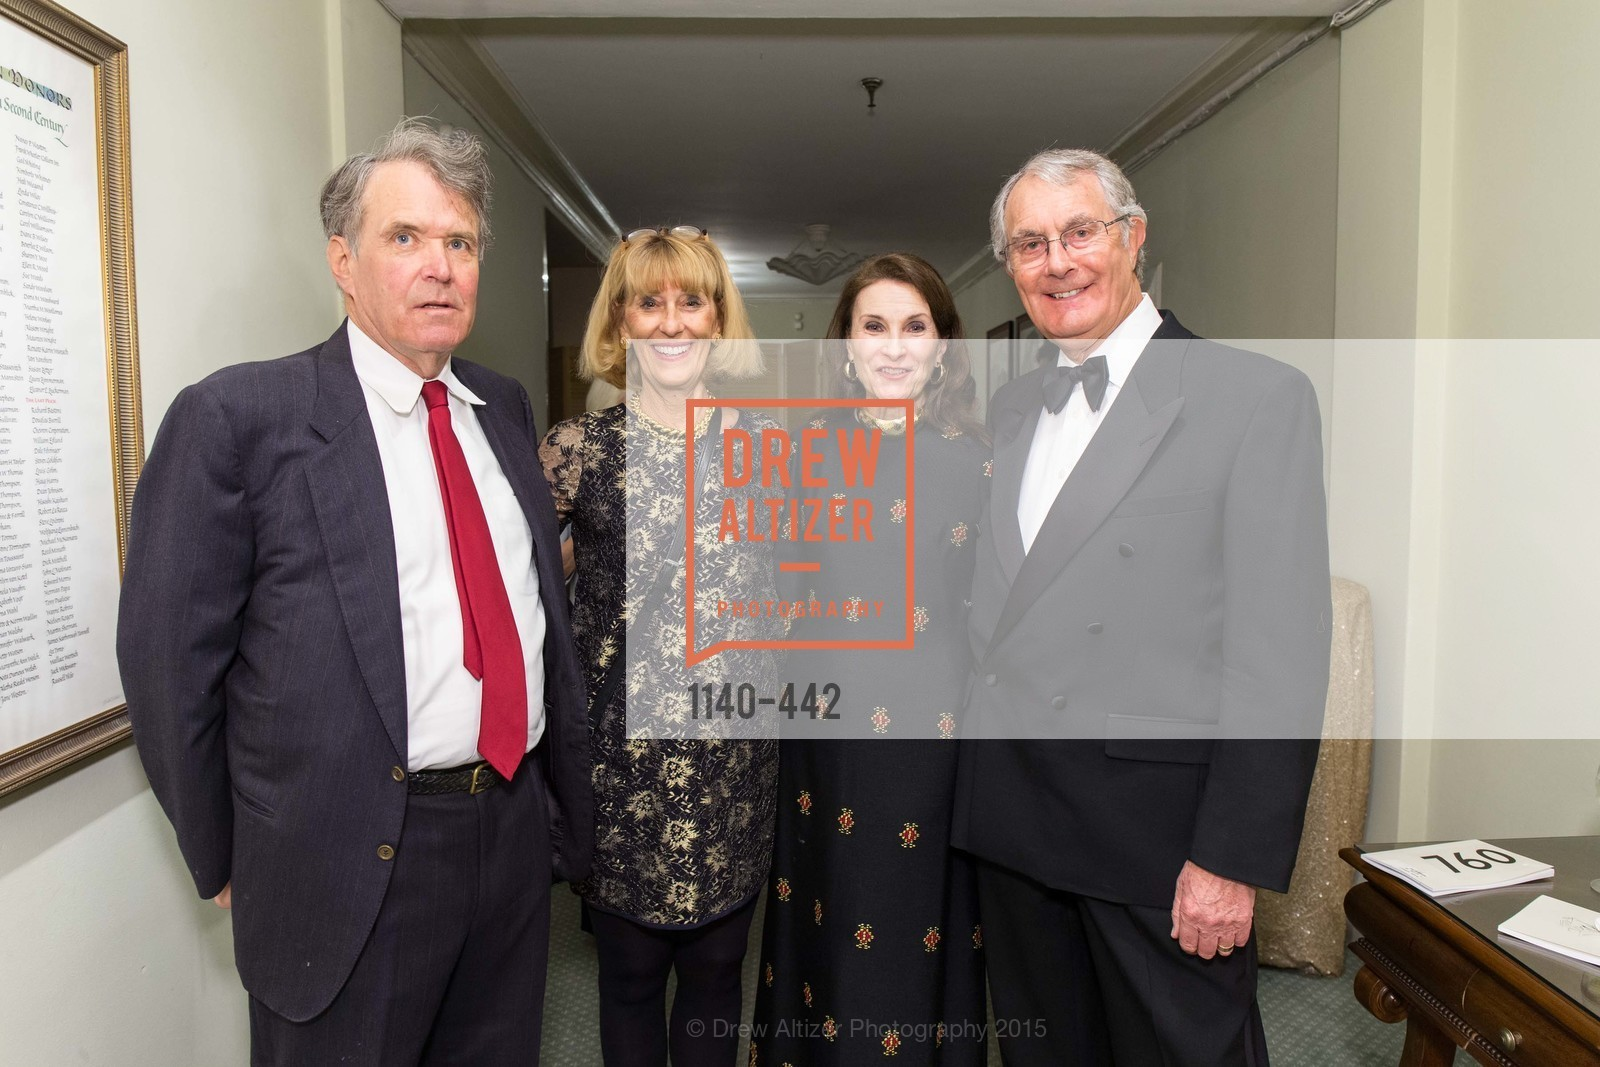 Ron Ward, Diana Ward, LaVerne Silverman, Alan Silverman, Metropolitan Club Presents THE CENTENNIAL GALA, Metropolitan Club. 640 Sutter Street, November 5th, 2015,Drew Altizer, Drew Altizer Photography, full-service agency, private events, San Francisco photographer, photographer california